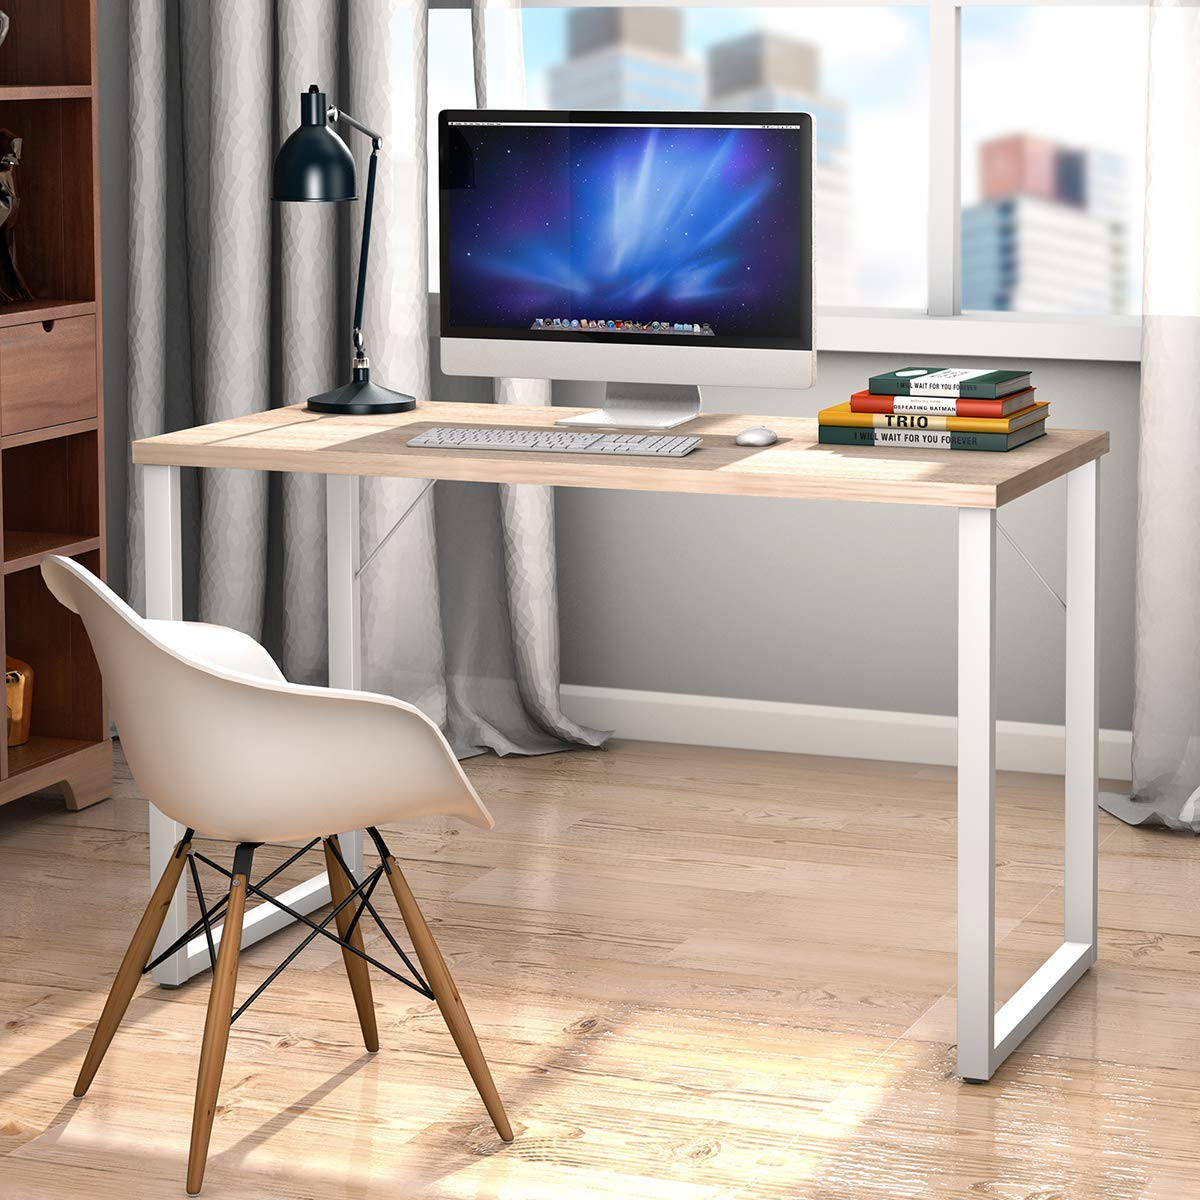 Tangkula 47 Computer Desk Writing Table, PC Laptop Office Desk, Study Writing Modern Table, Modern Simple Writing Desk, Multipurpose Workstation for Home and Office, Gaming Computer Desk